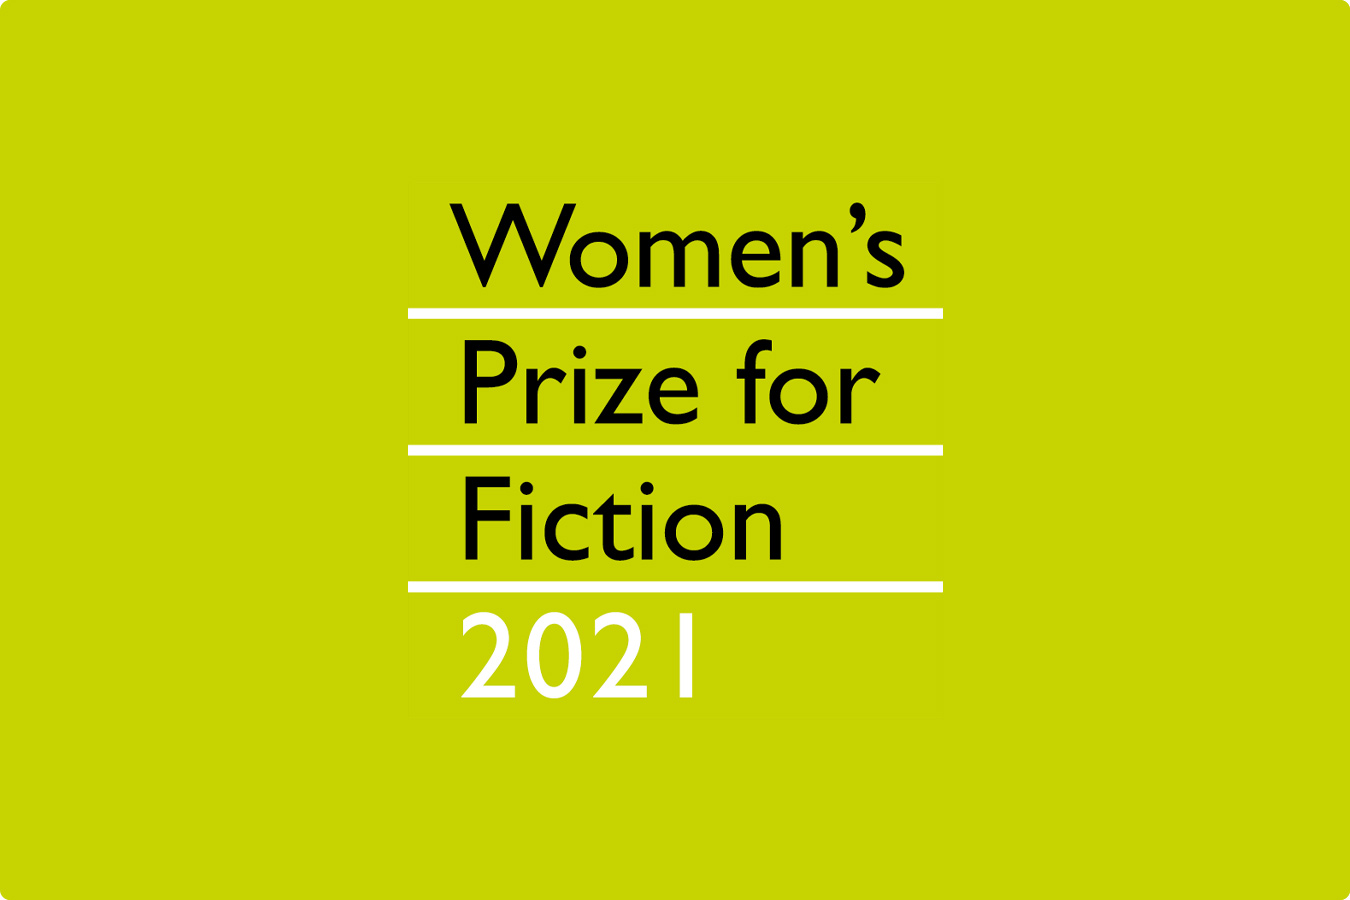 """Women's Prize for Fiction 2021"" on a lime green background."